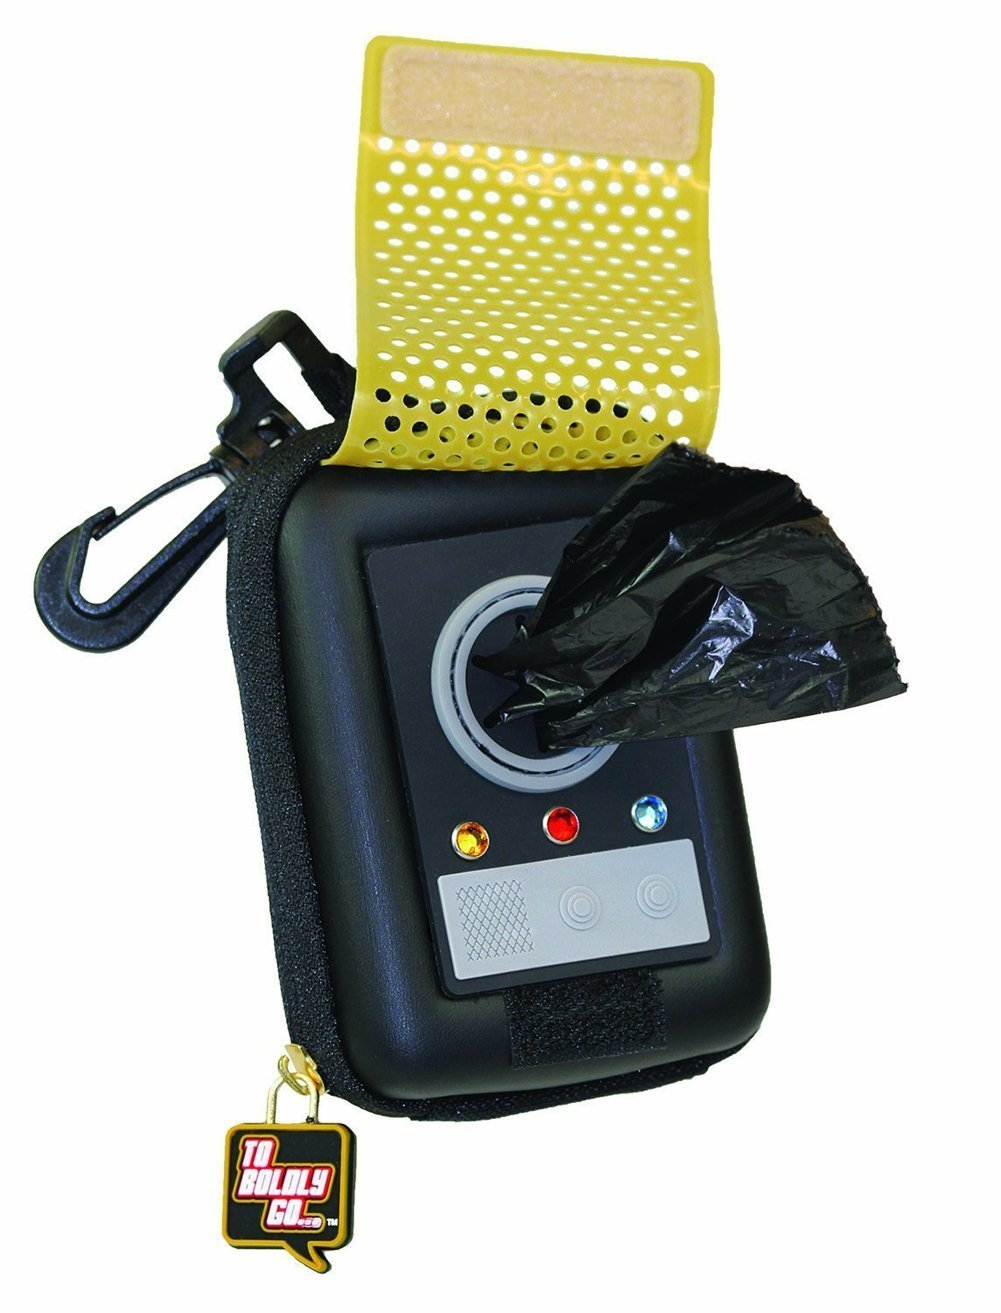 Star Trek Communicator Dog Bag Dispenser